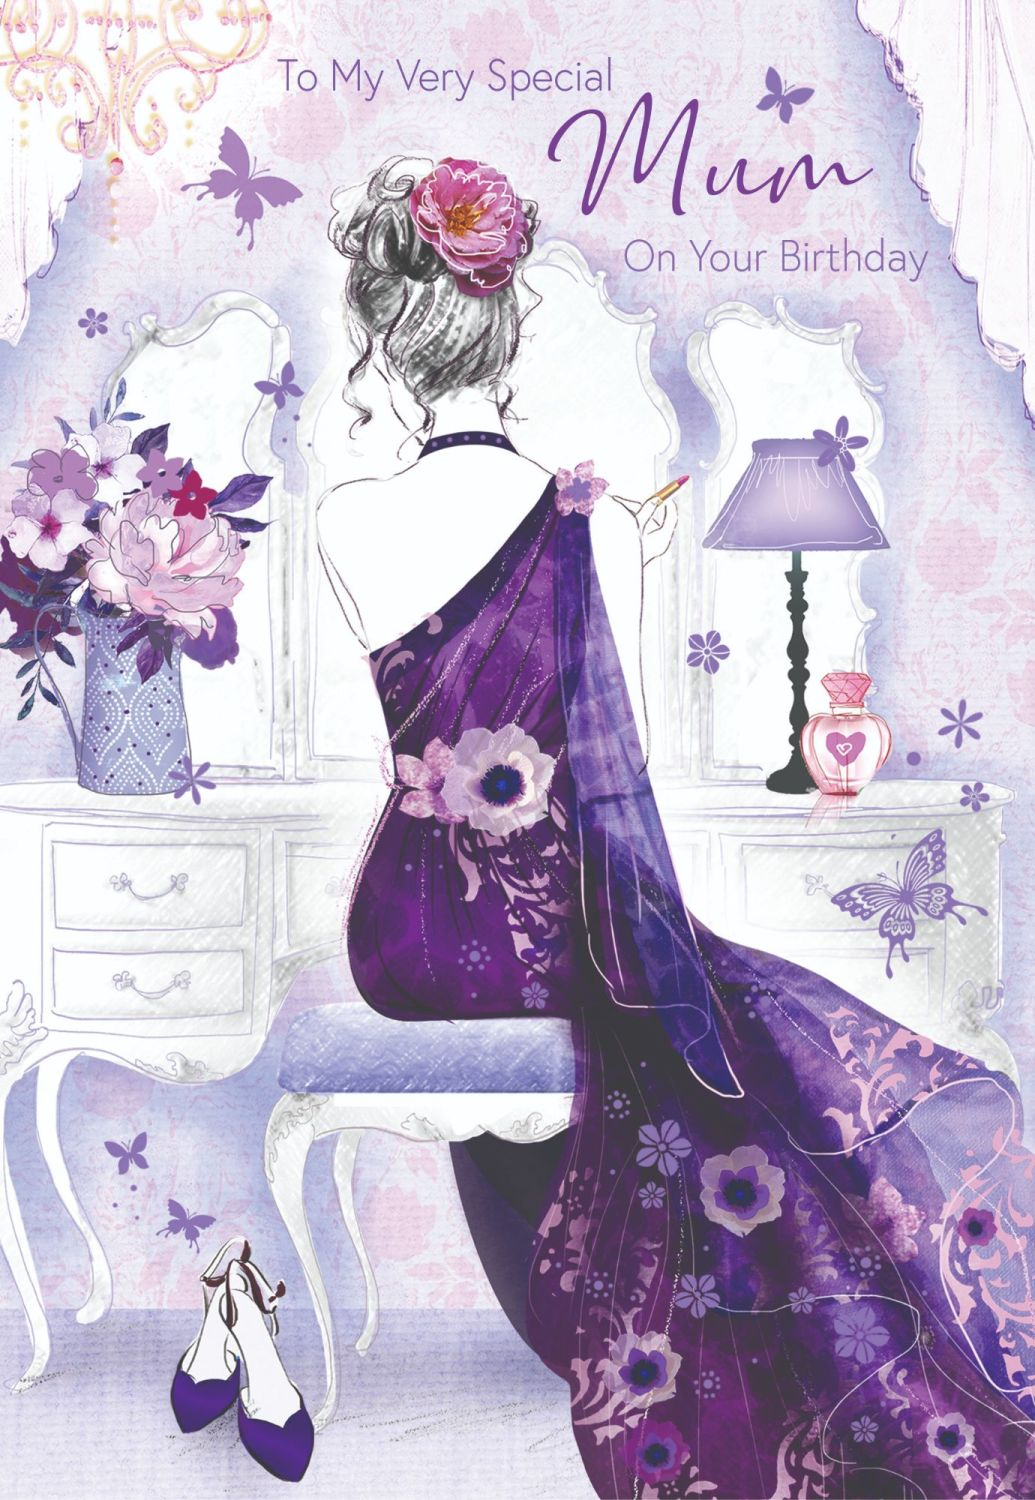 To My Very Special Mum Birthday Card - BIRTHDAY Cards FOR Mum - BEAUTIFUL M